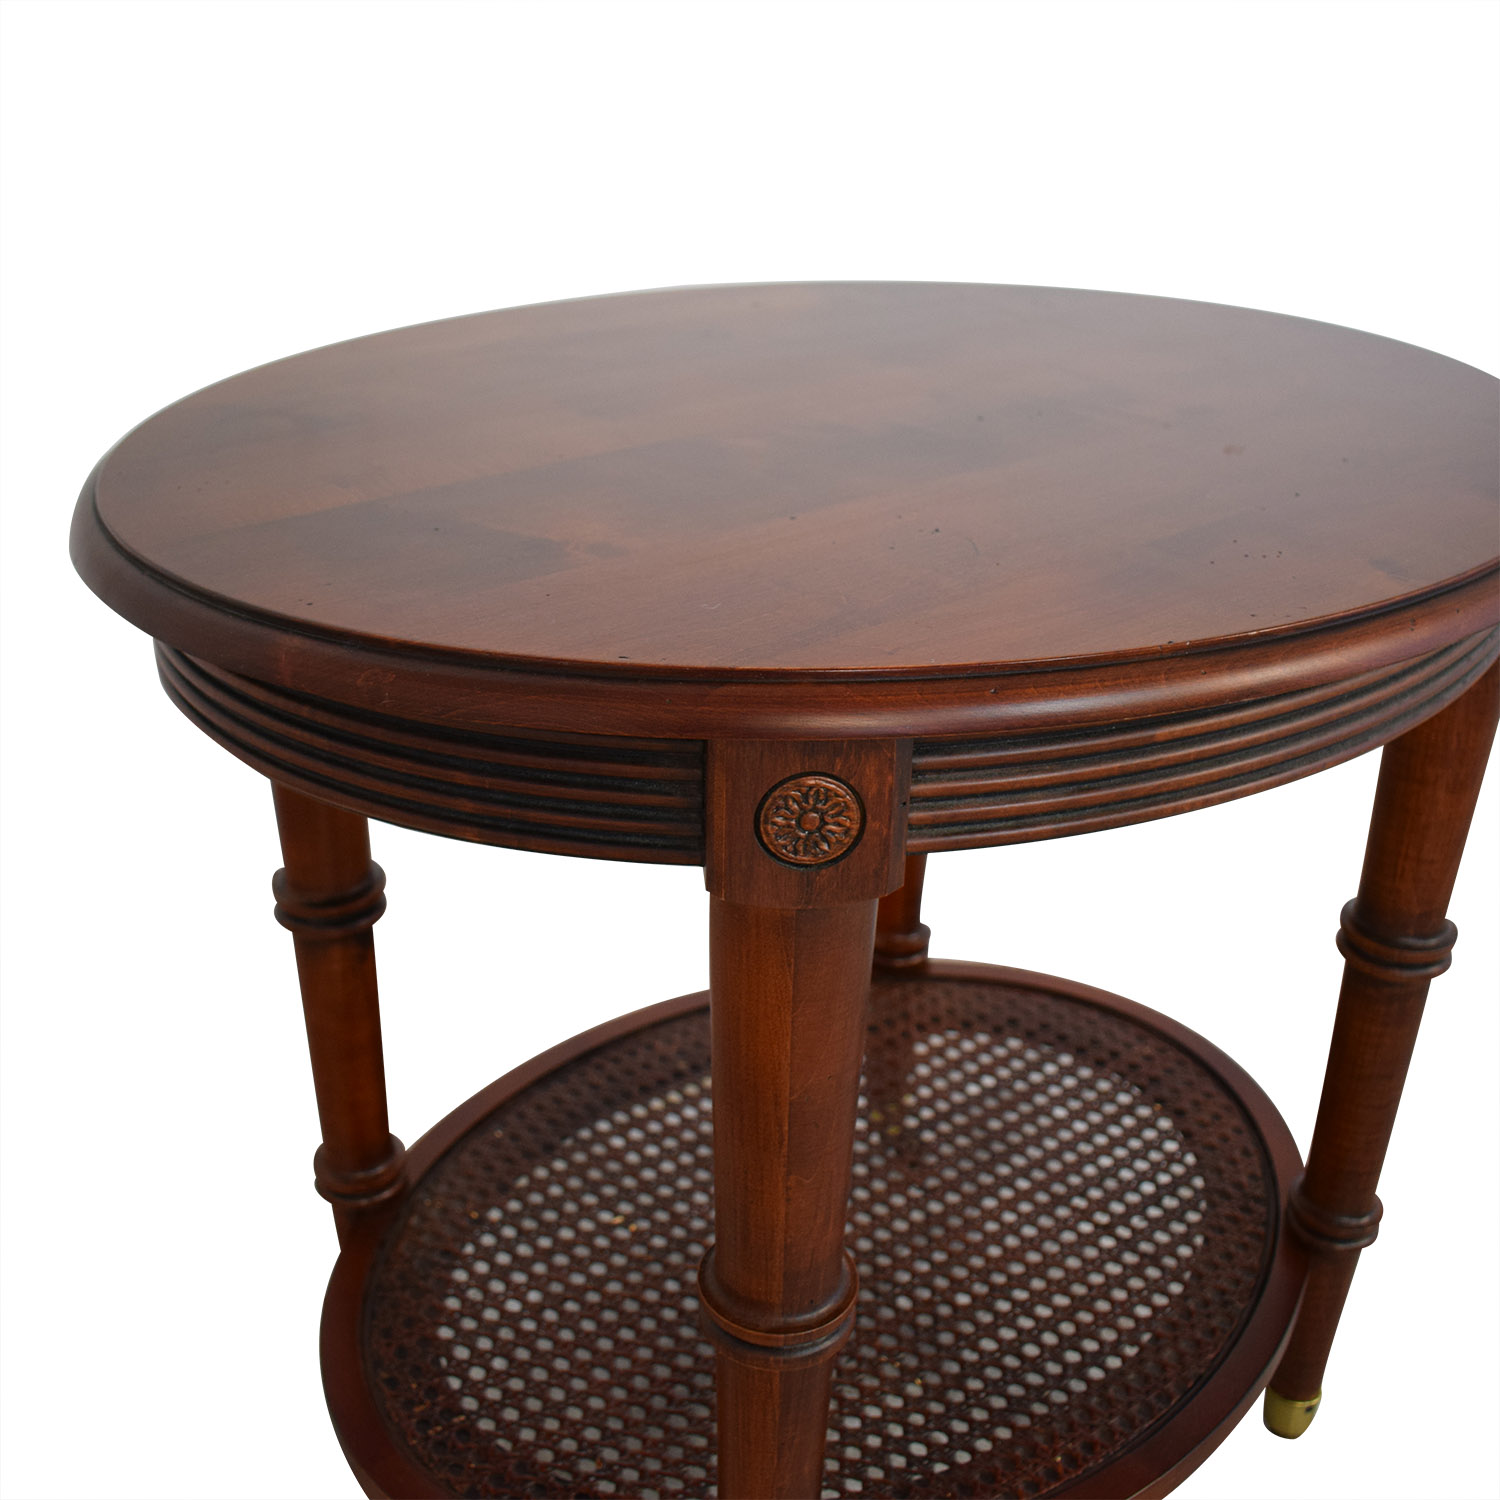 Ethan Allen Ethan Allen Freeport End Table used